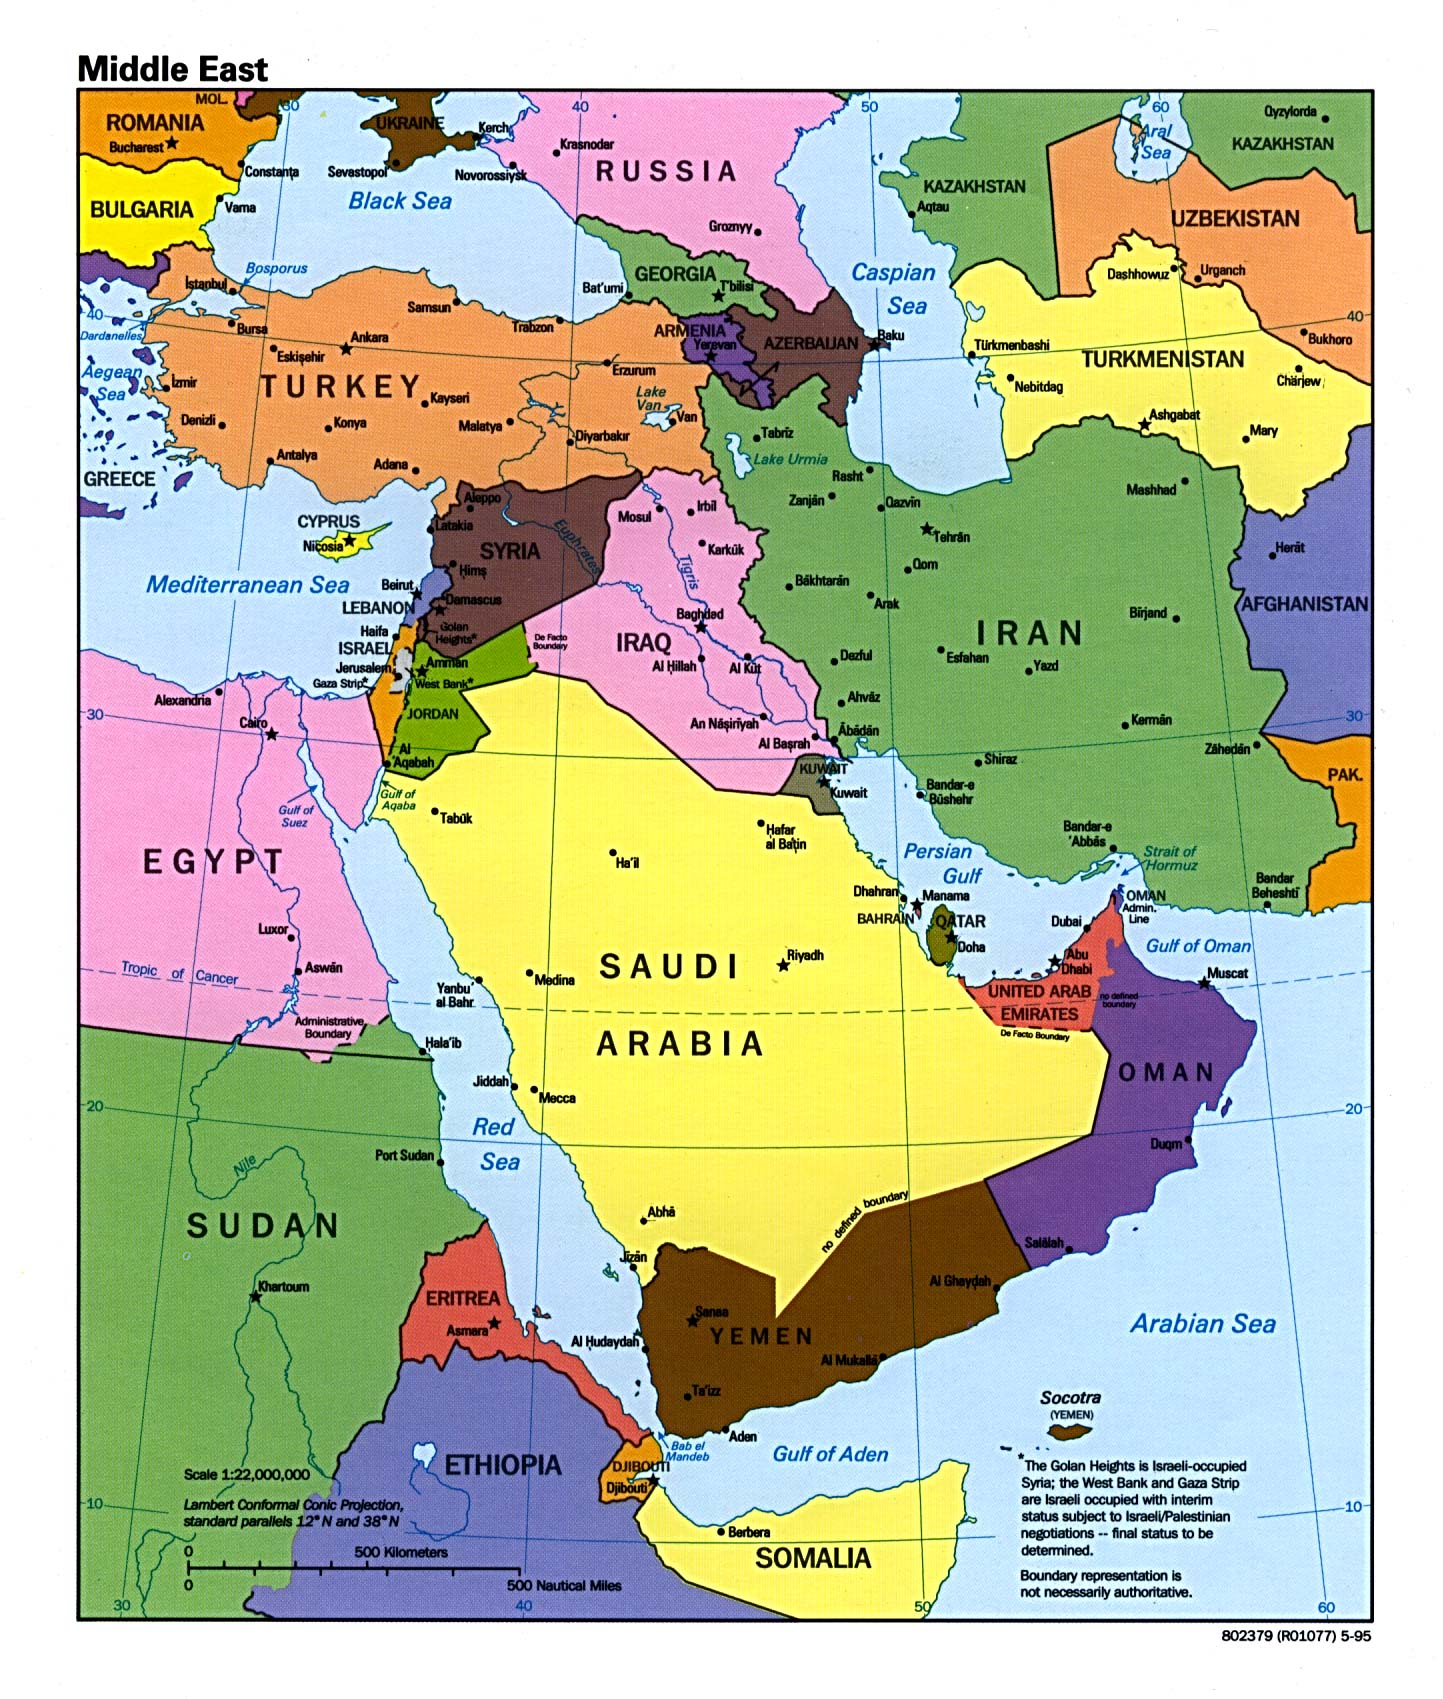 World Map Middle East Middle East Maps   Perry Castañeda Map Collection   UT Library Online